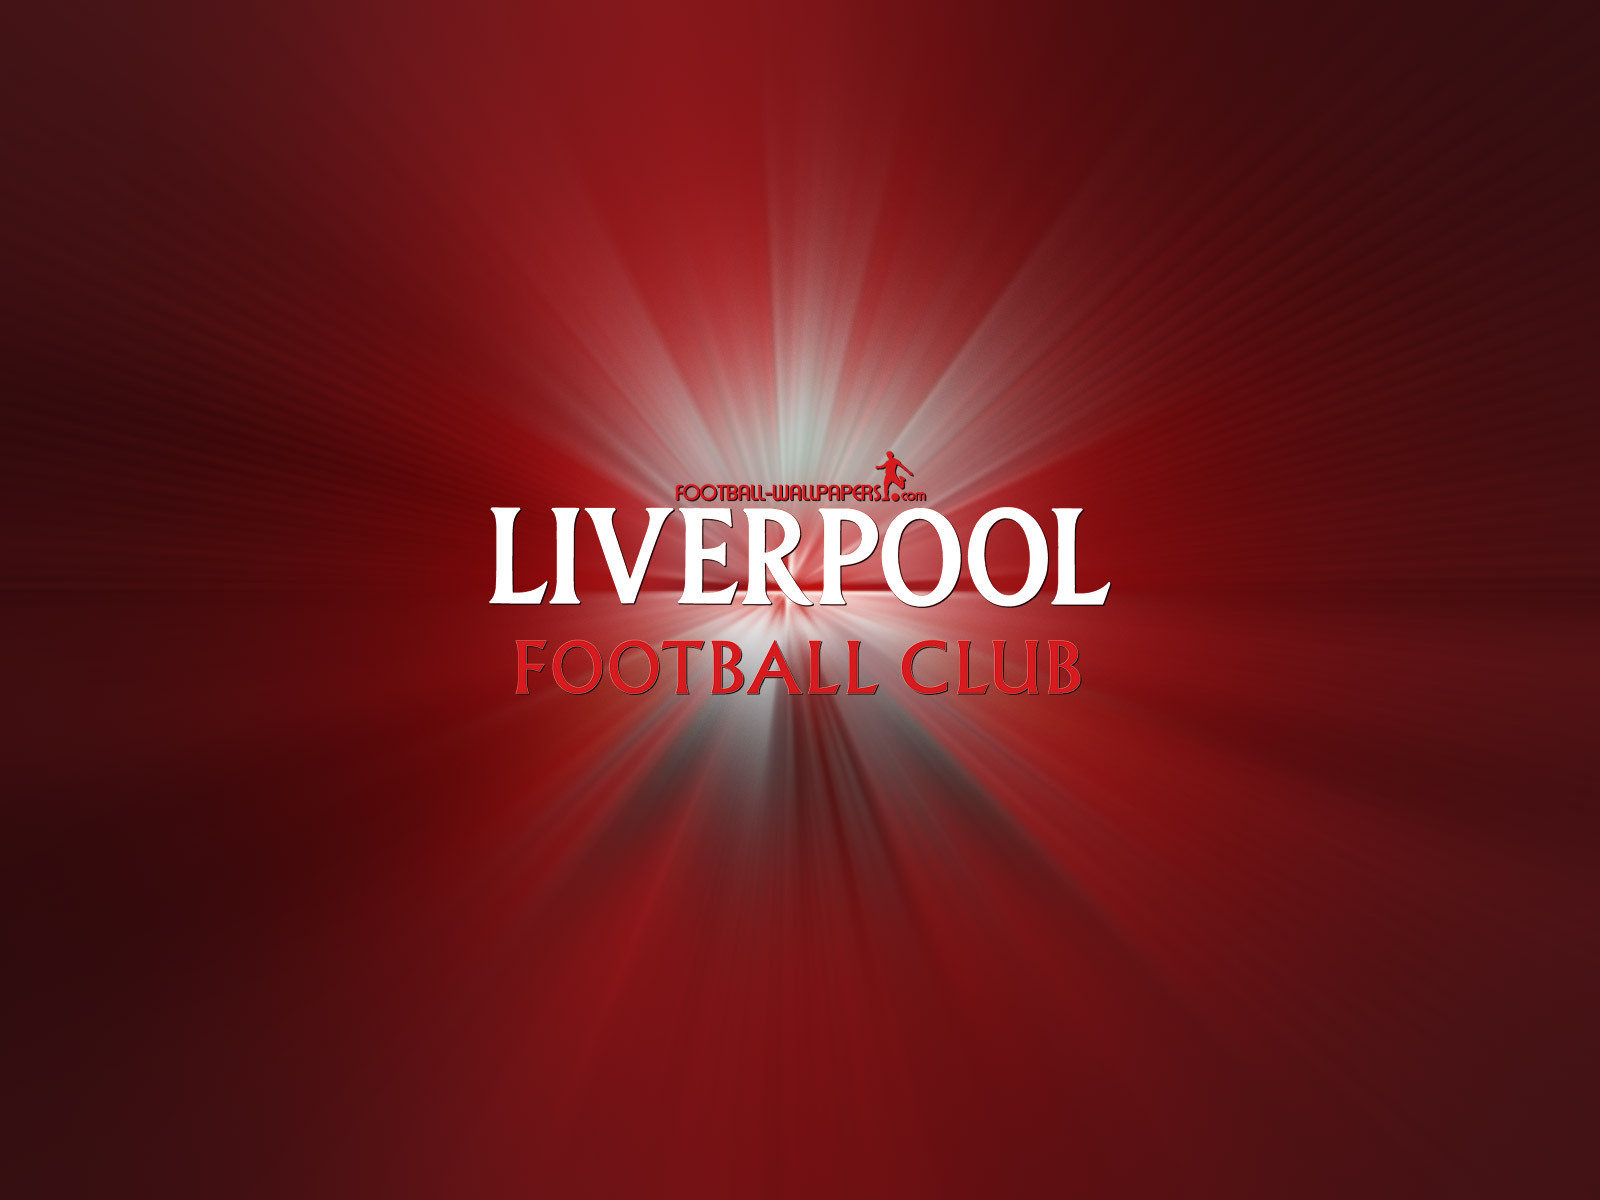 Wallpaper Persib 3d Liverpool Wallpapers 4 Liverpool F C Wallpaper